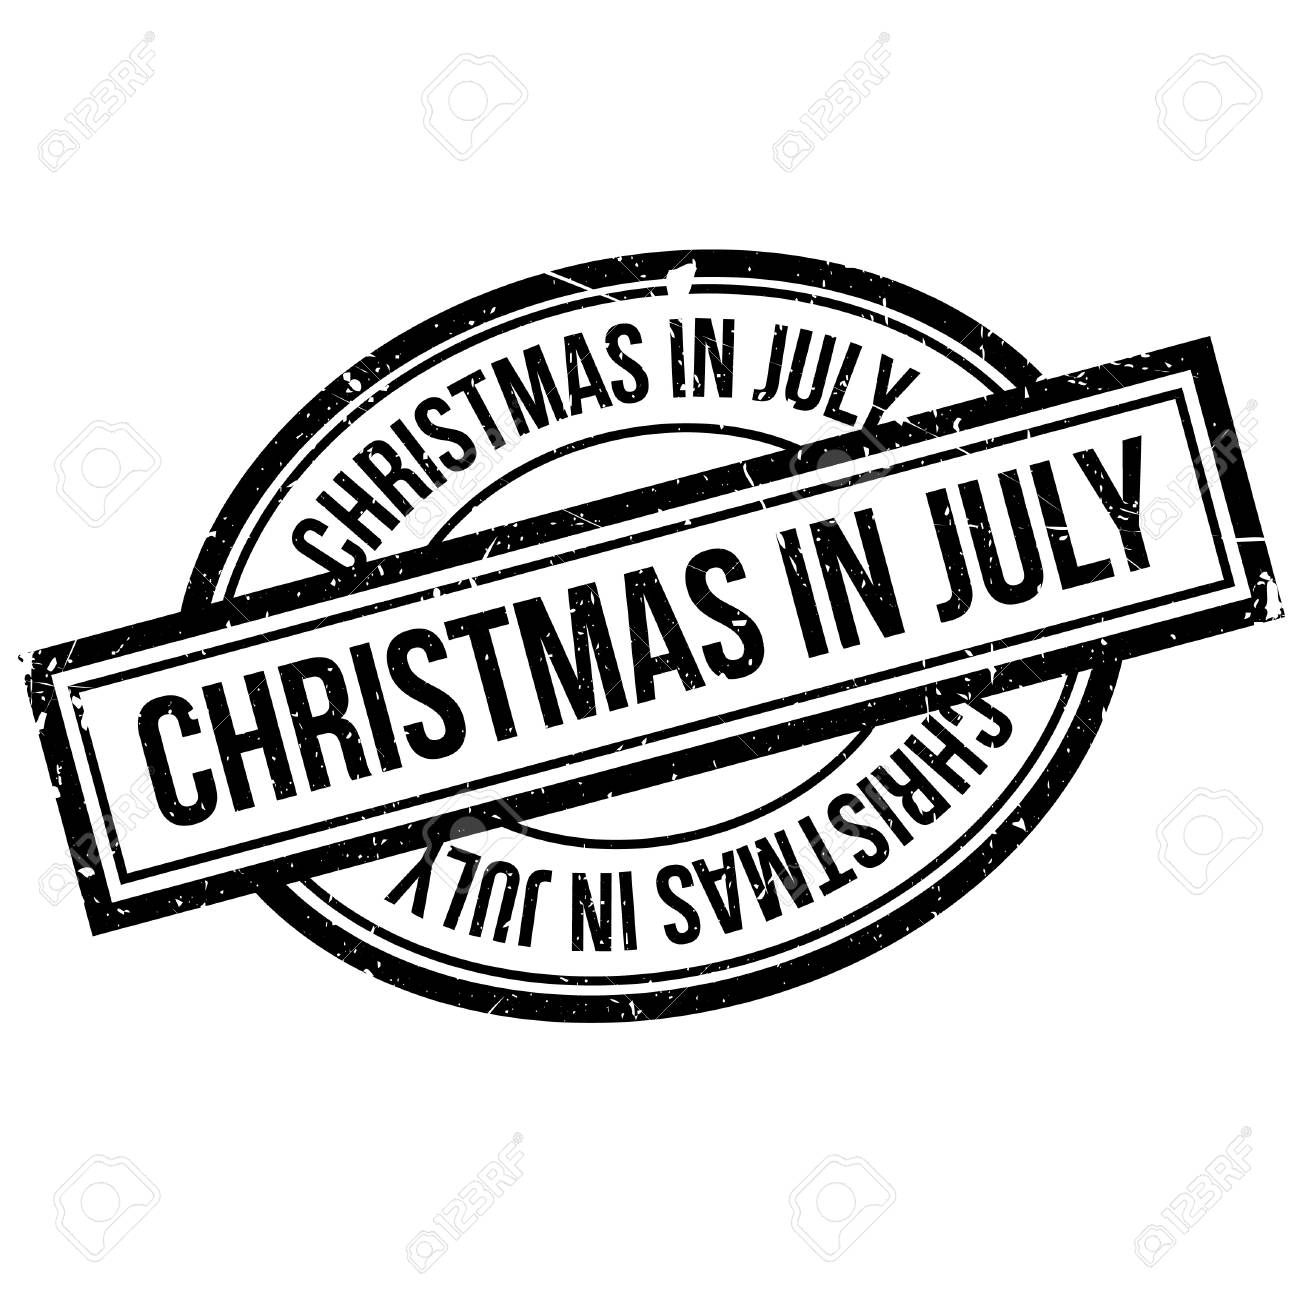 Christmas In July Clipart Black And White.Christmas In July Rubber Stamp Grunge Design With Dust Scratches